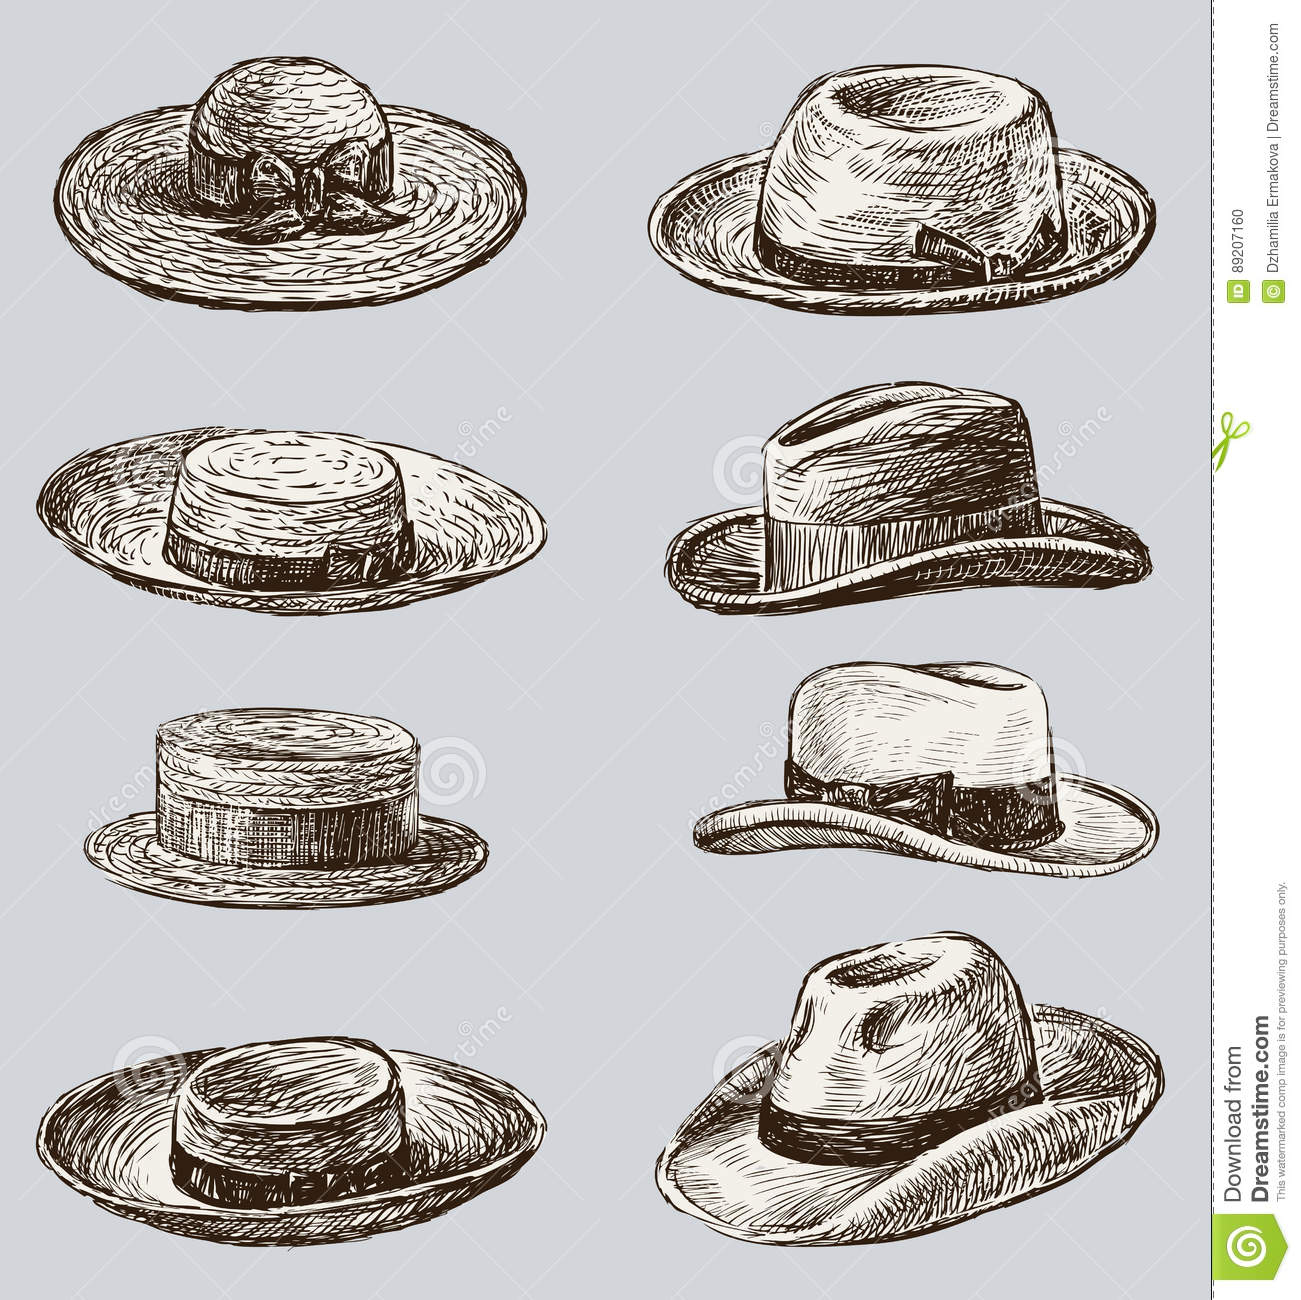 94e42c87 Collection Of The Male And Female Hats Stock Vector - Illustration ...